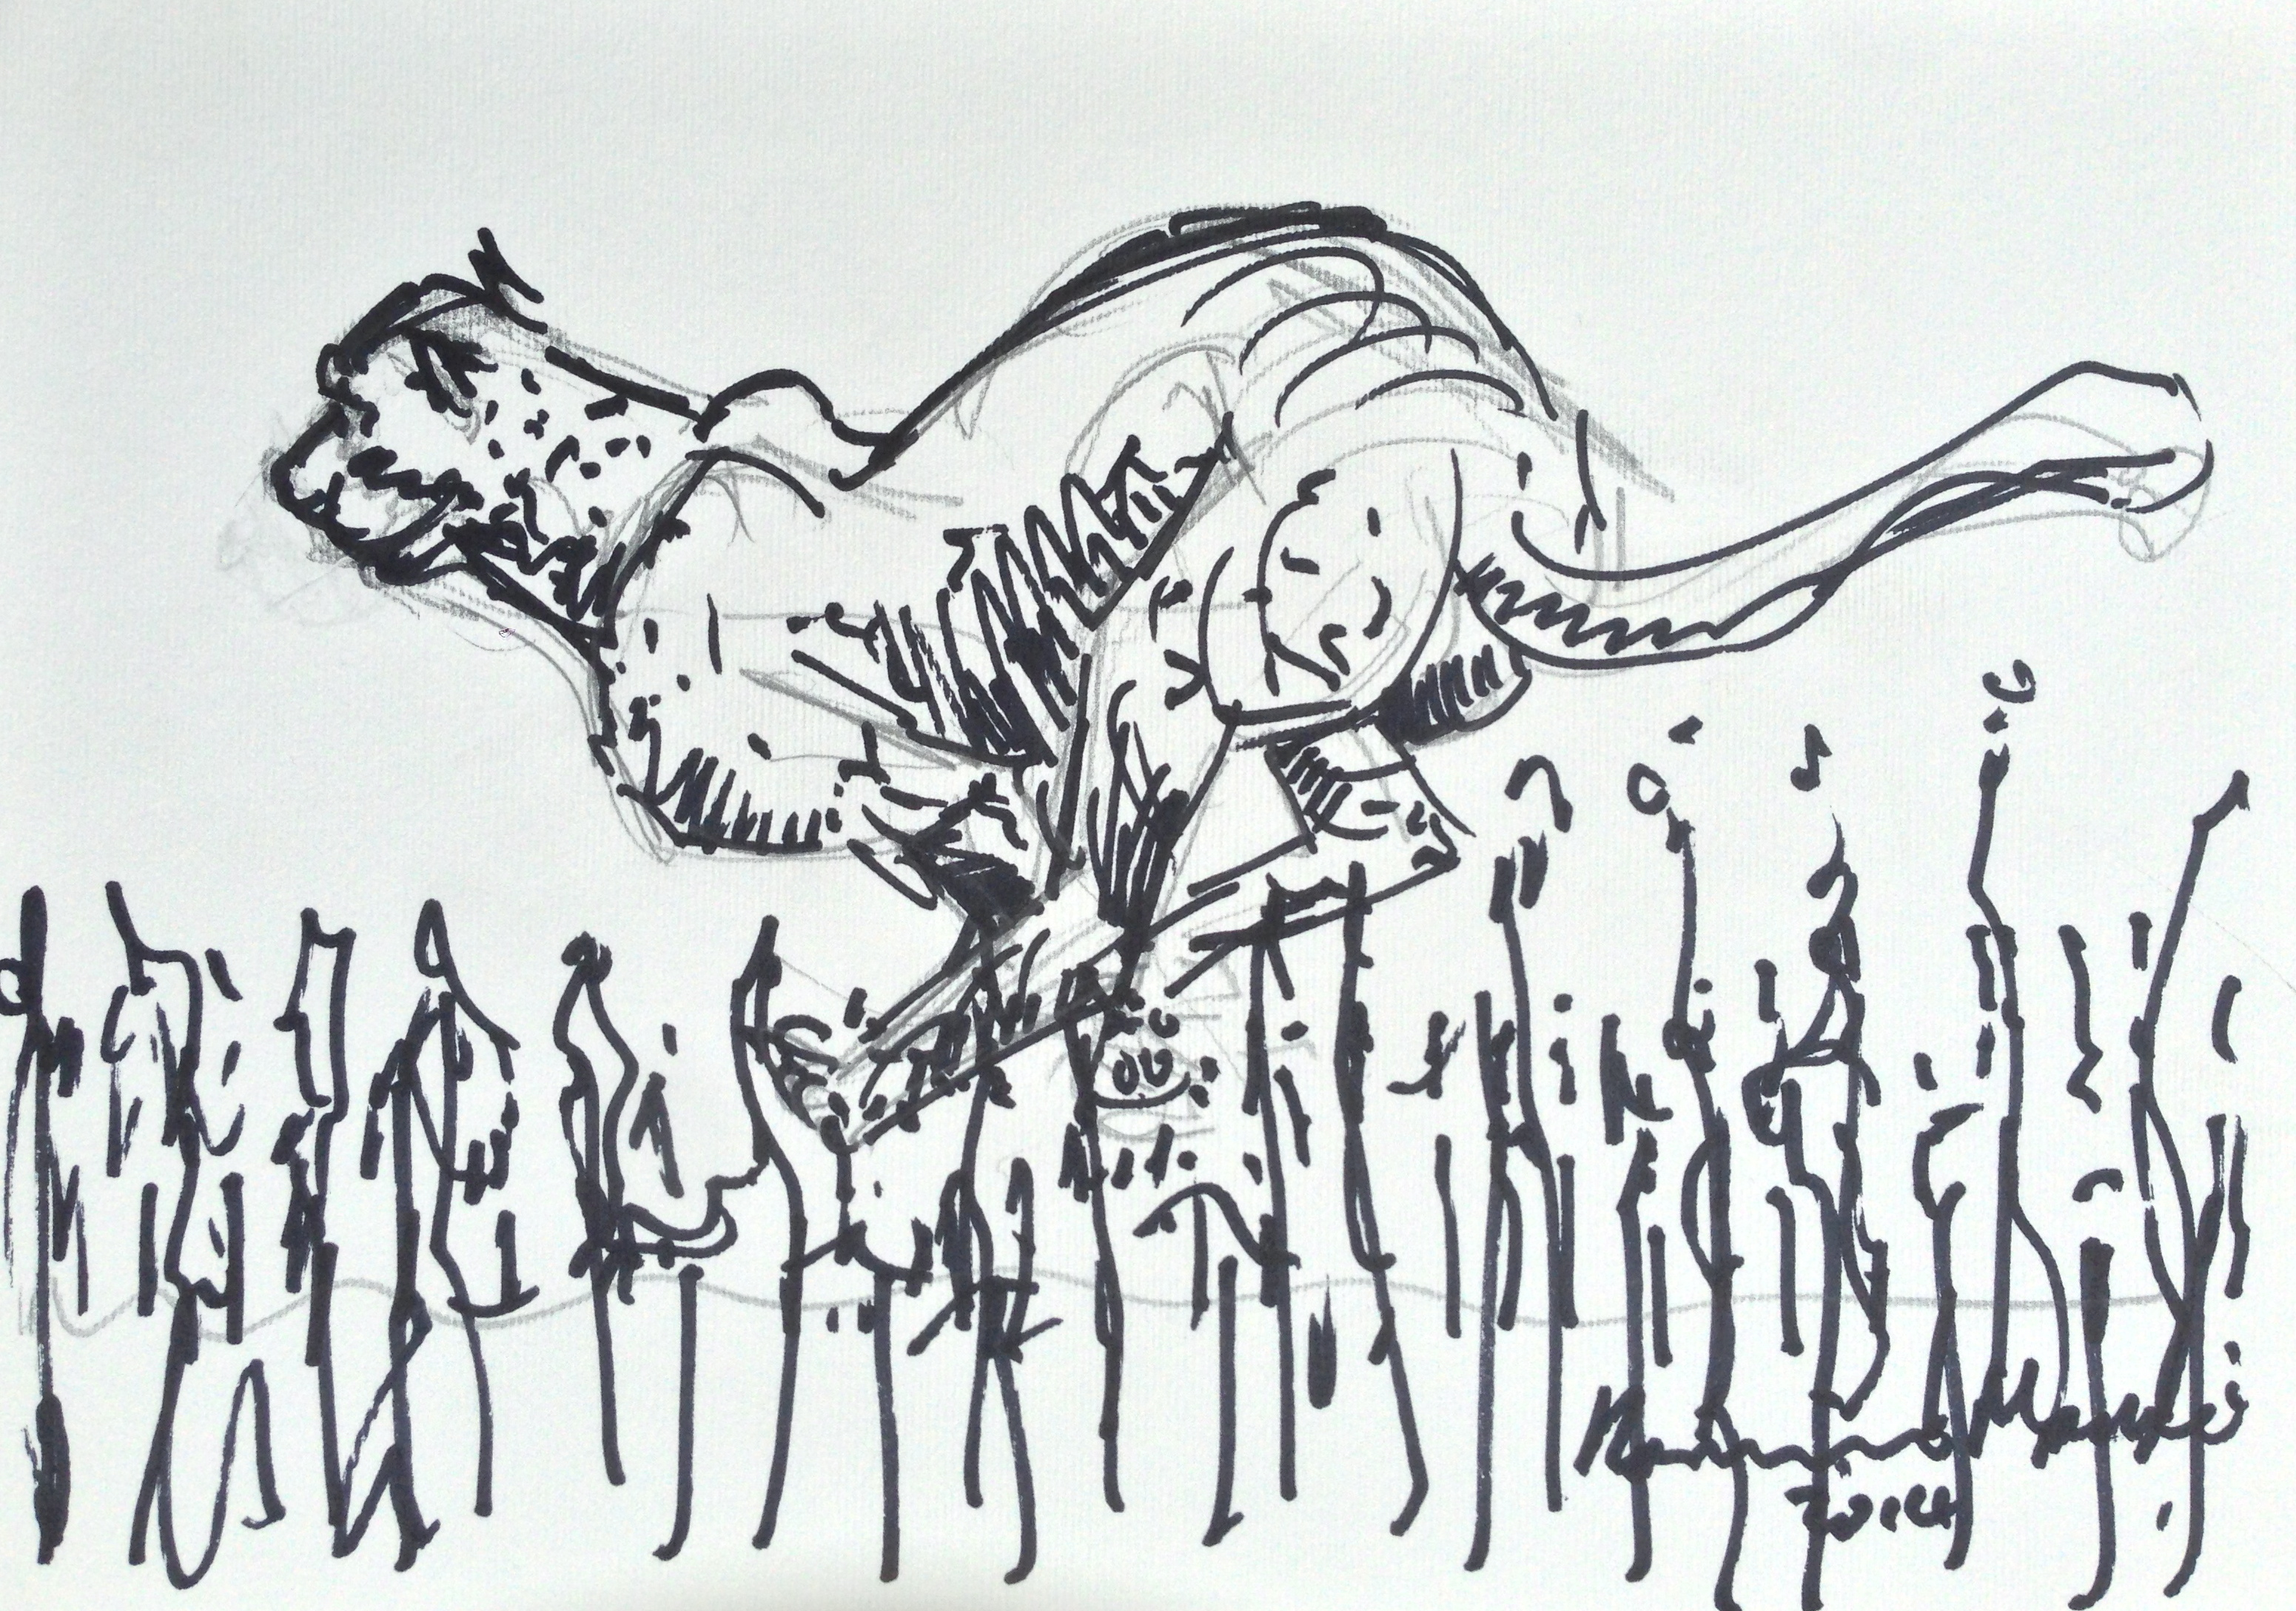 Lot 32 - Hamish Mackie Running Cheetah signed and dated 2014, pencil underneath felt pen, 17.5 x 25cm.